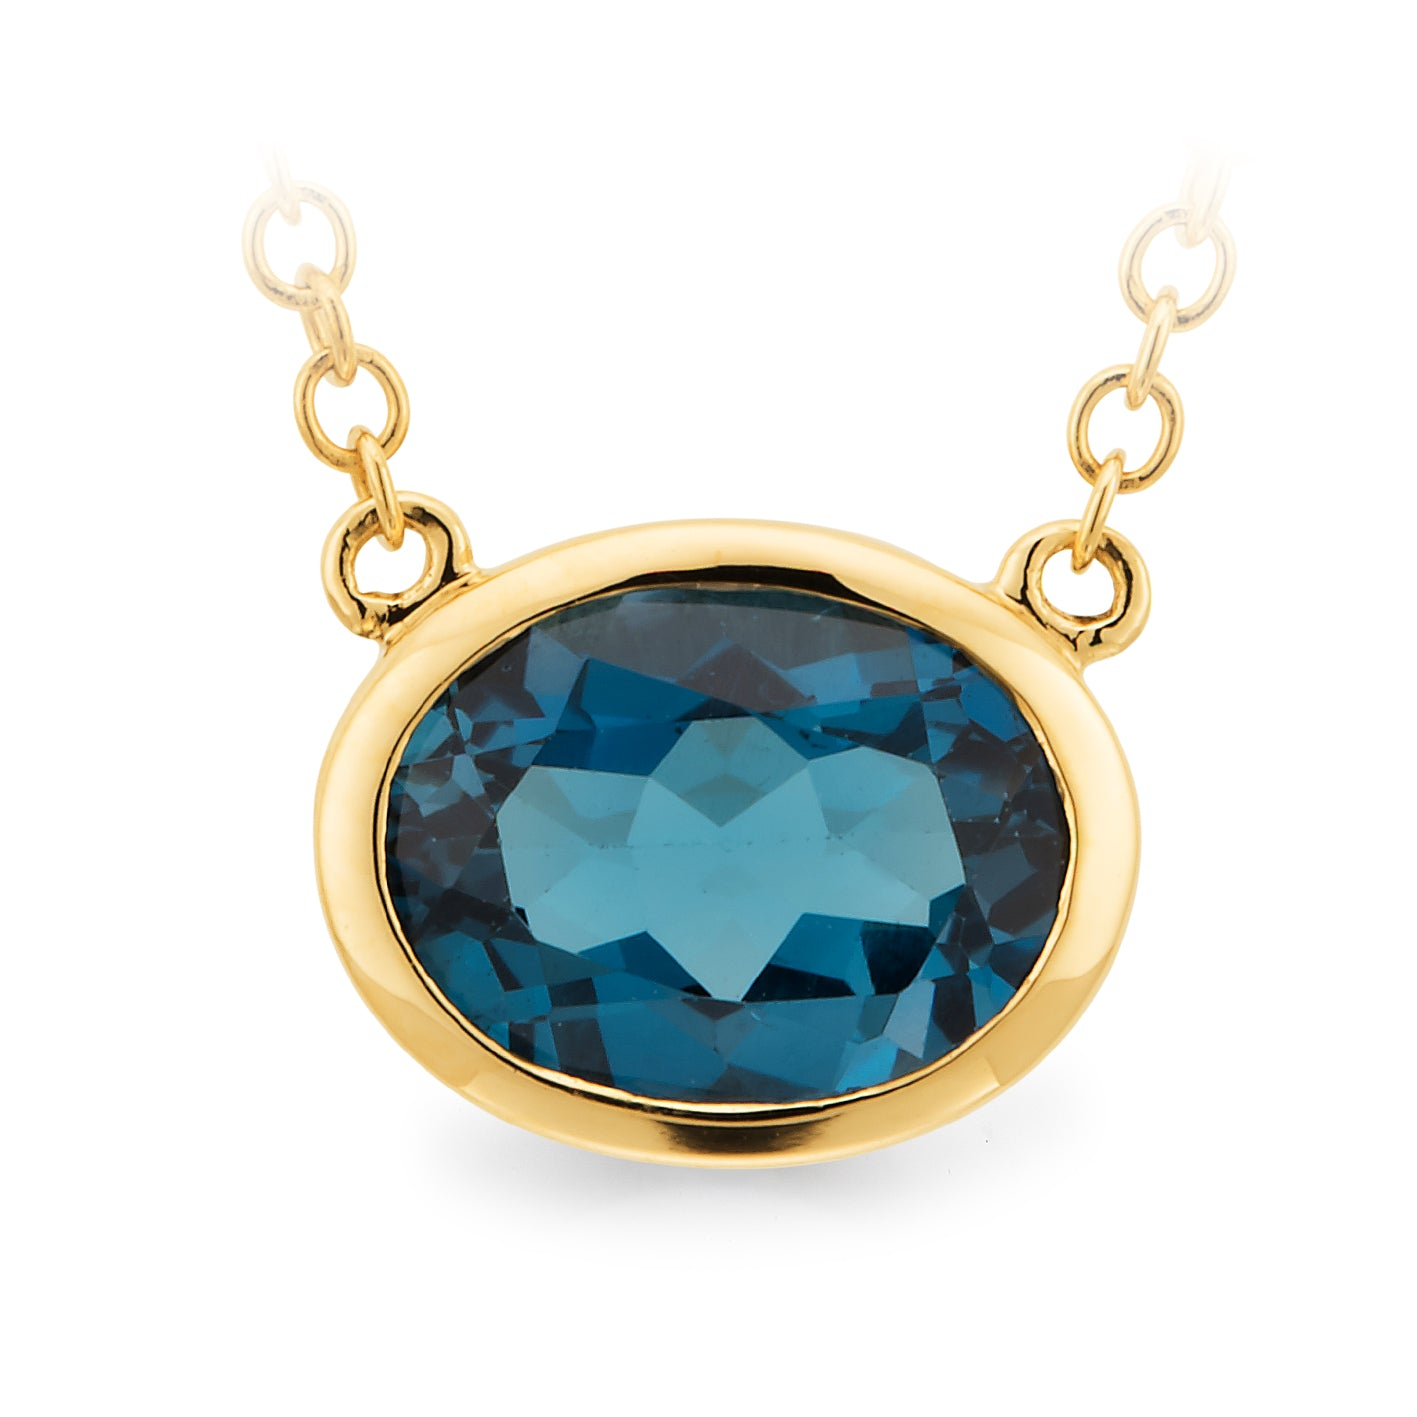 London Blue Topaz Bezel Set Pendant